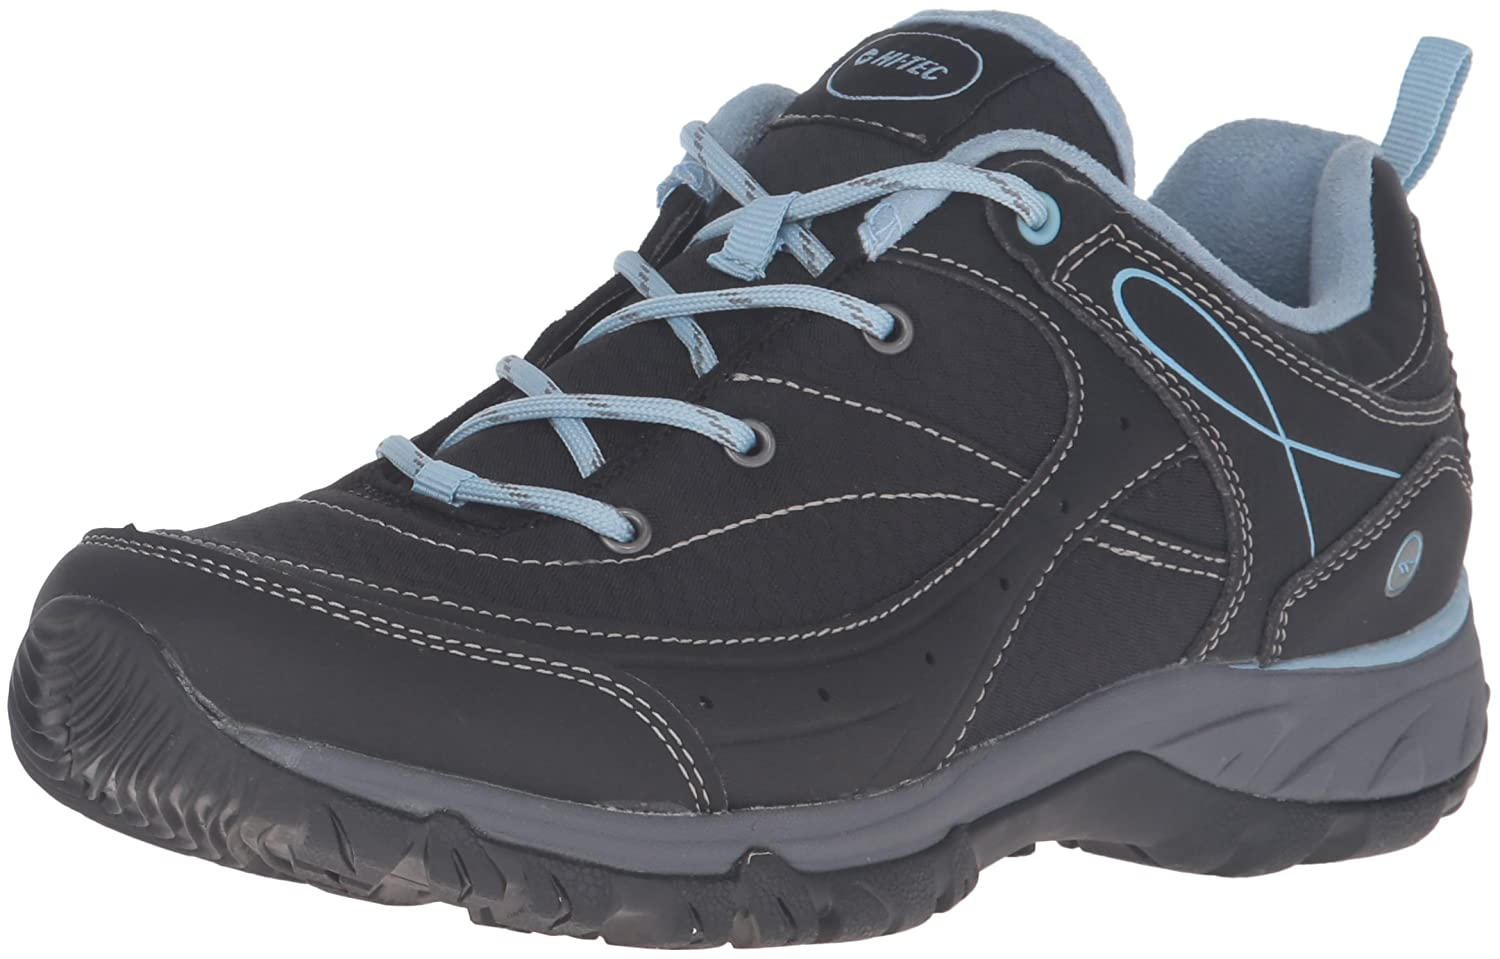 Hi-Tec Women's Equilibrio Bijou Low I-W Hiking Shoe B01A0FH0LG 9 B(M) US|Black/Forget Me Not